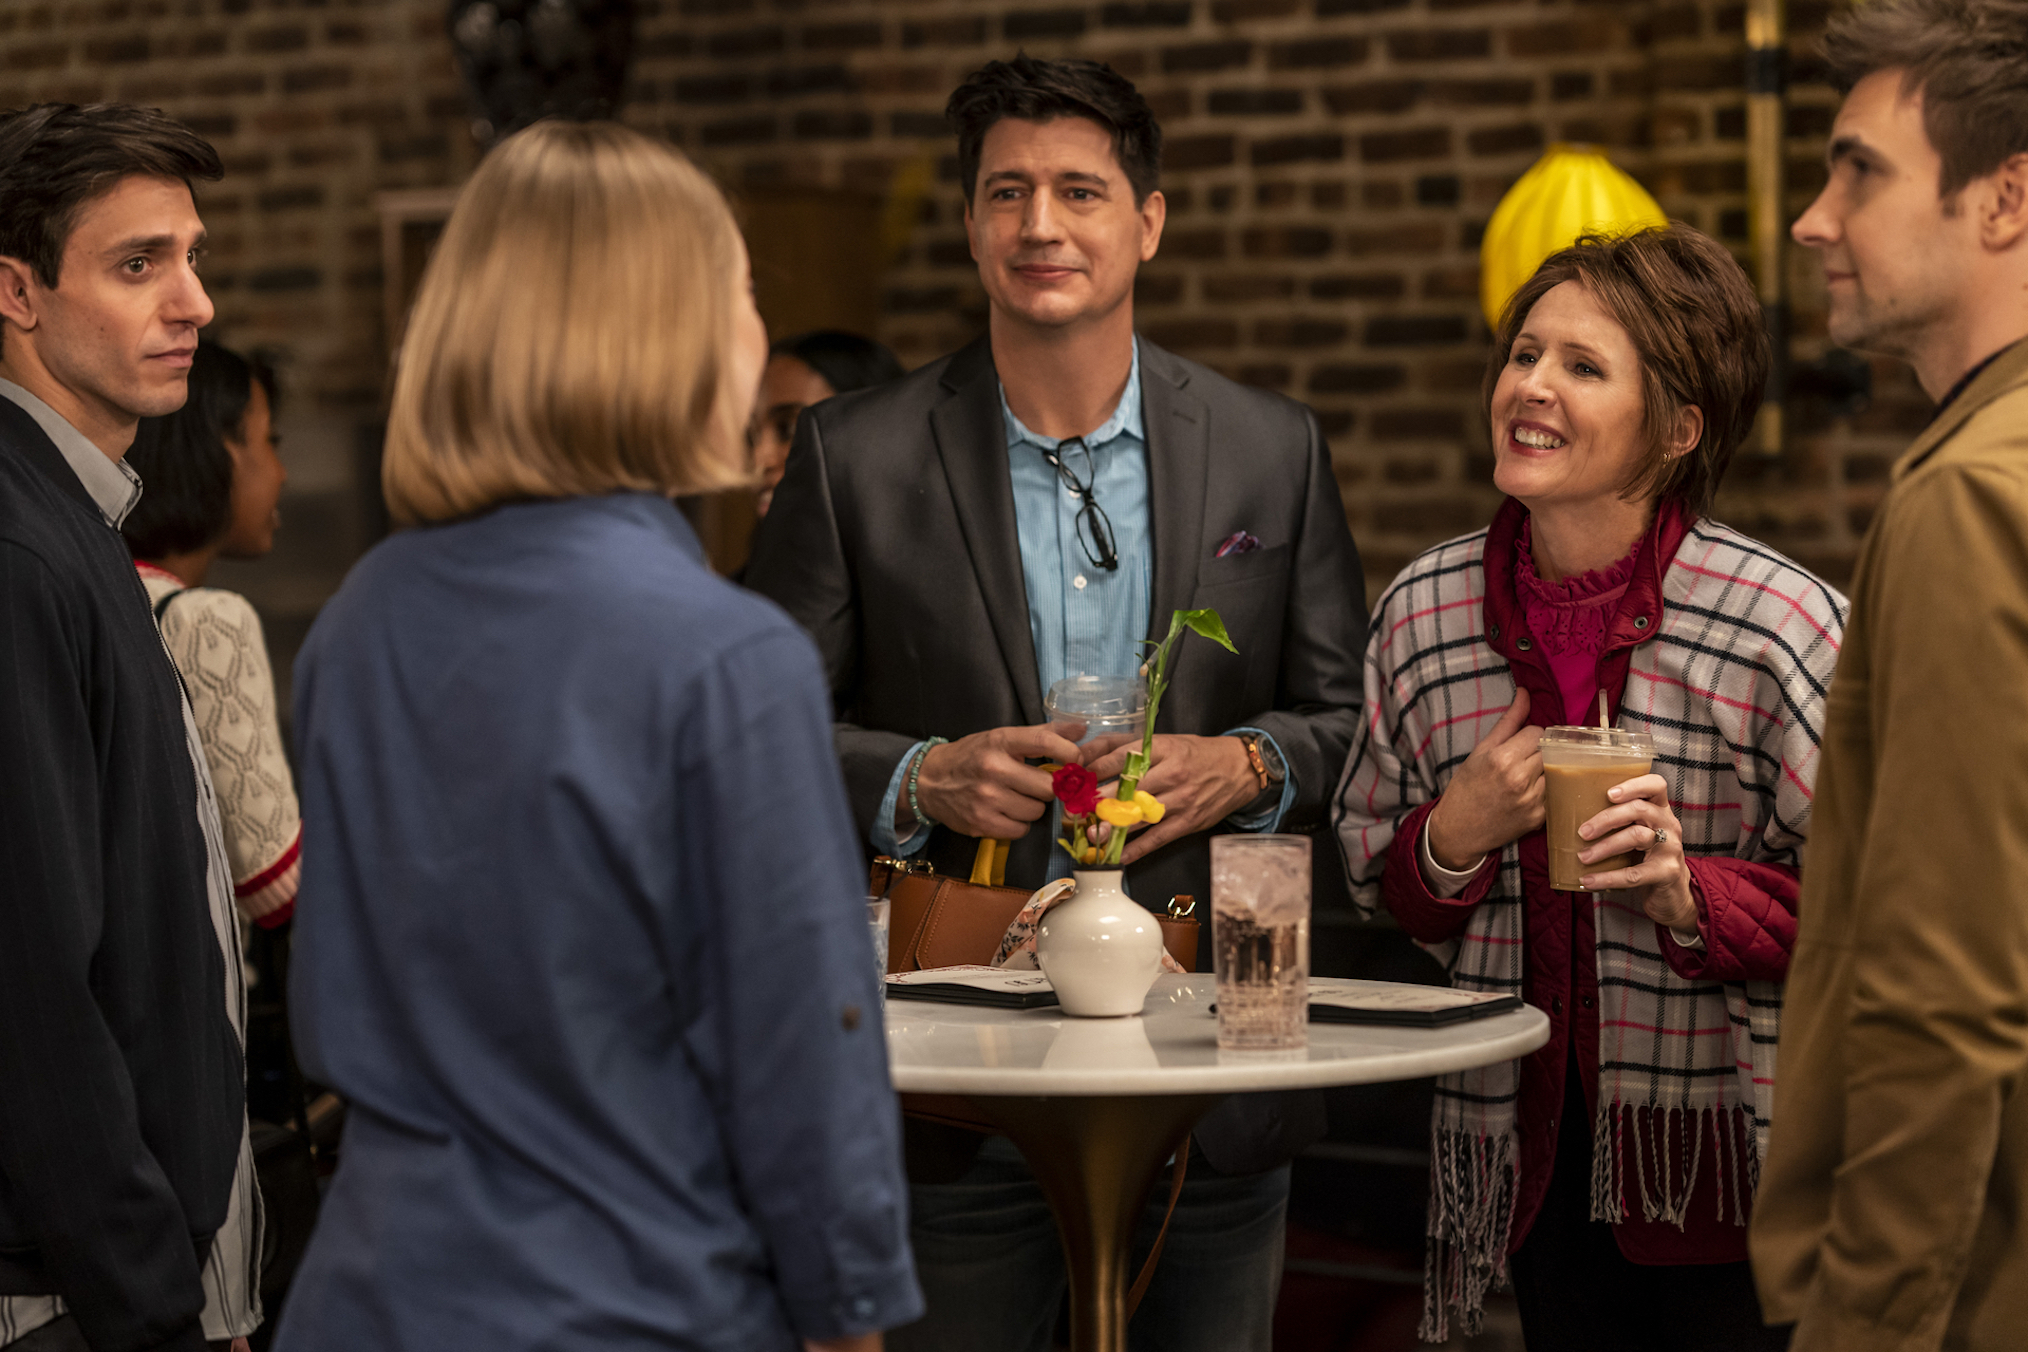 Gideon Glick, Ken Marino, Molly Shannon, Drew Tarver in The Other Two